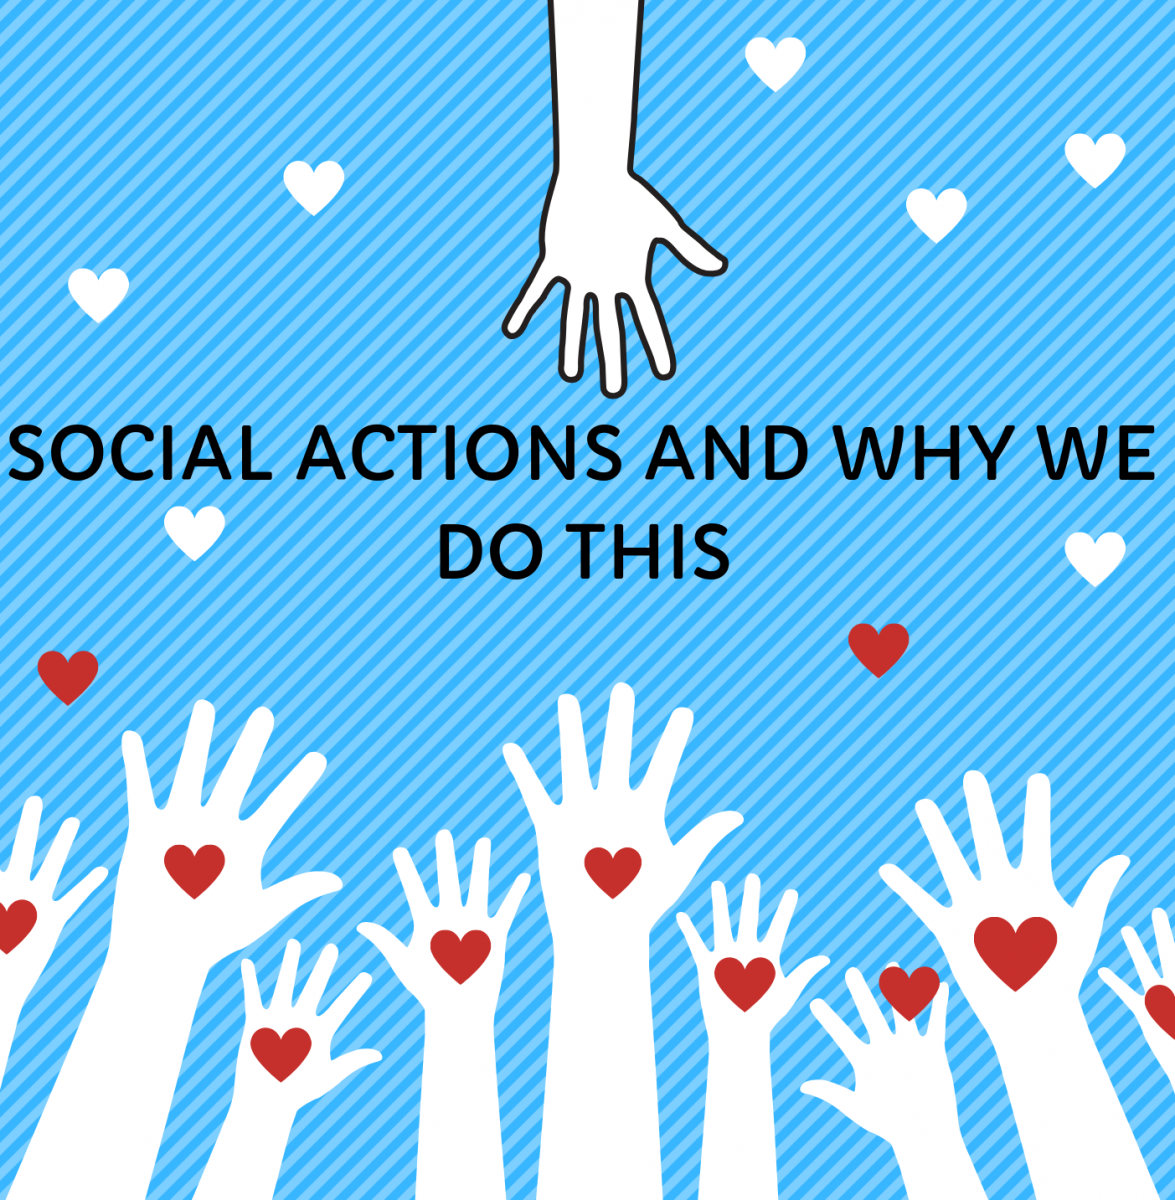 SOCIAL ACTIONS AND WHY WE DO THIS